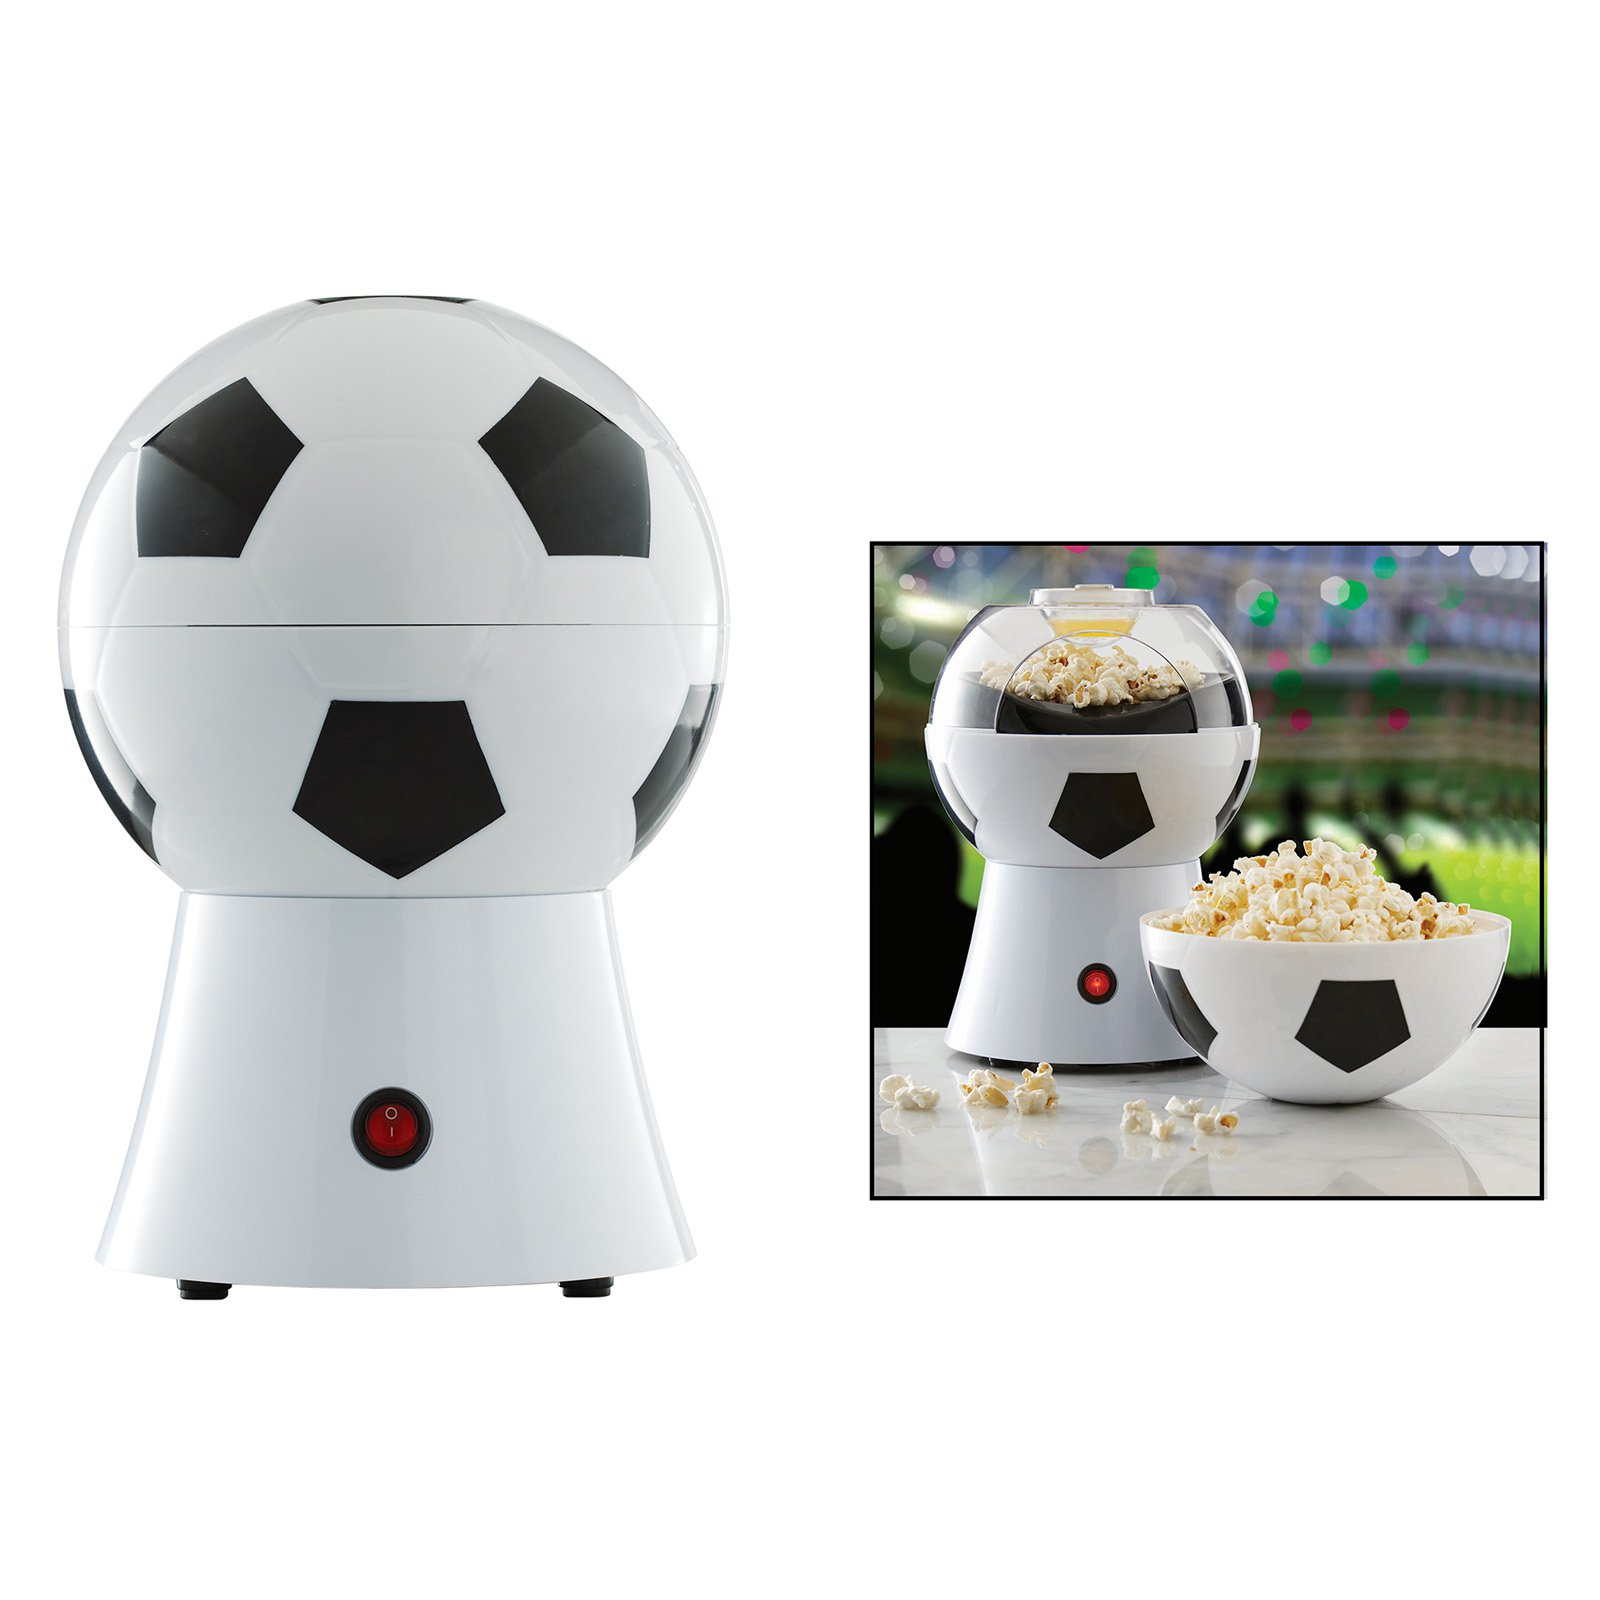 Brentwood Appliances Hot Air Soccer Ball Popcorn Popper